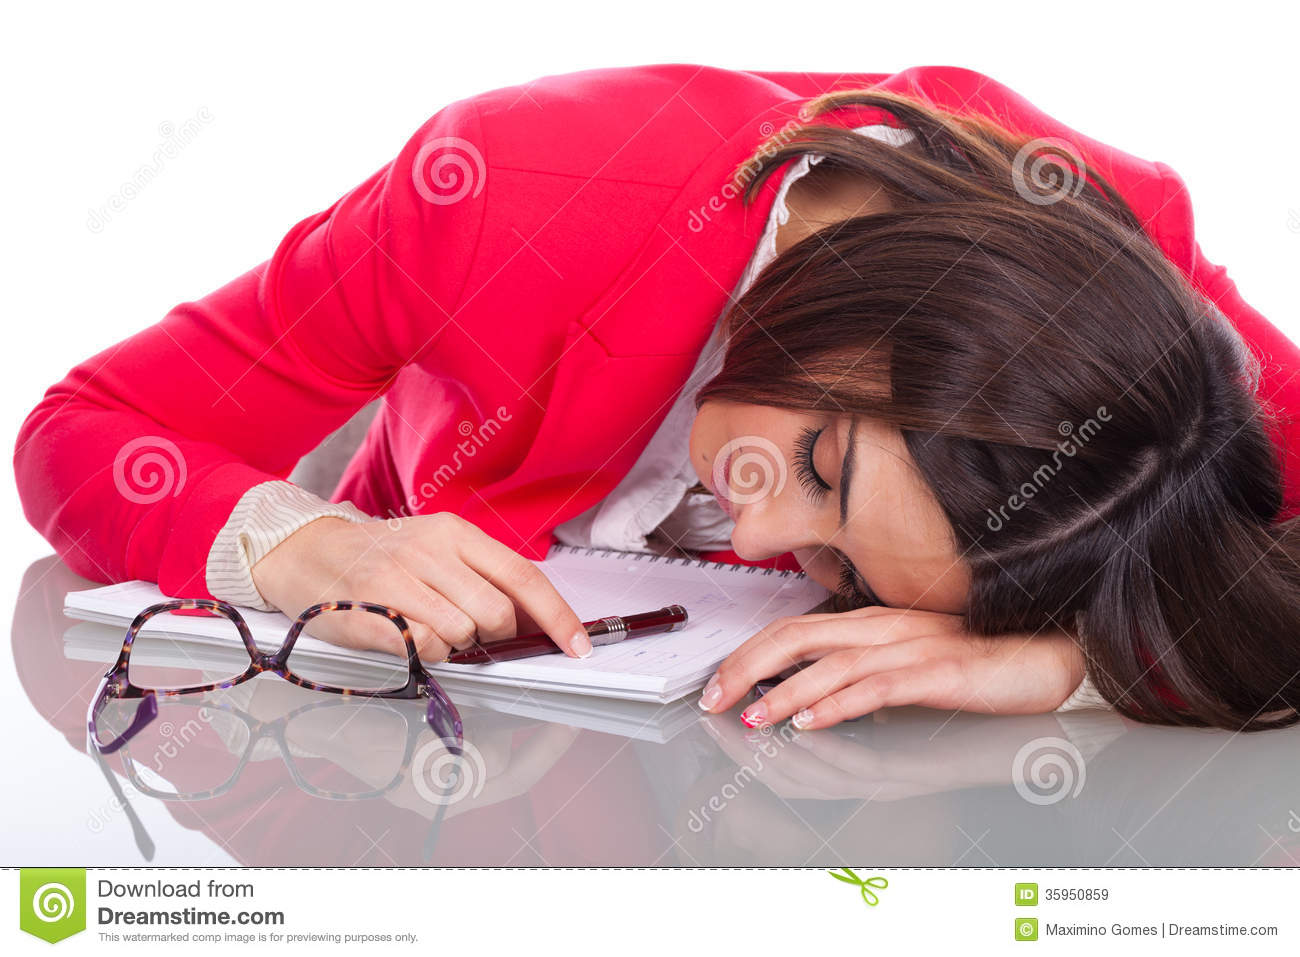 Woman Sleeping At Desk Pictures and Images  Getty Images